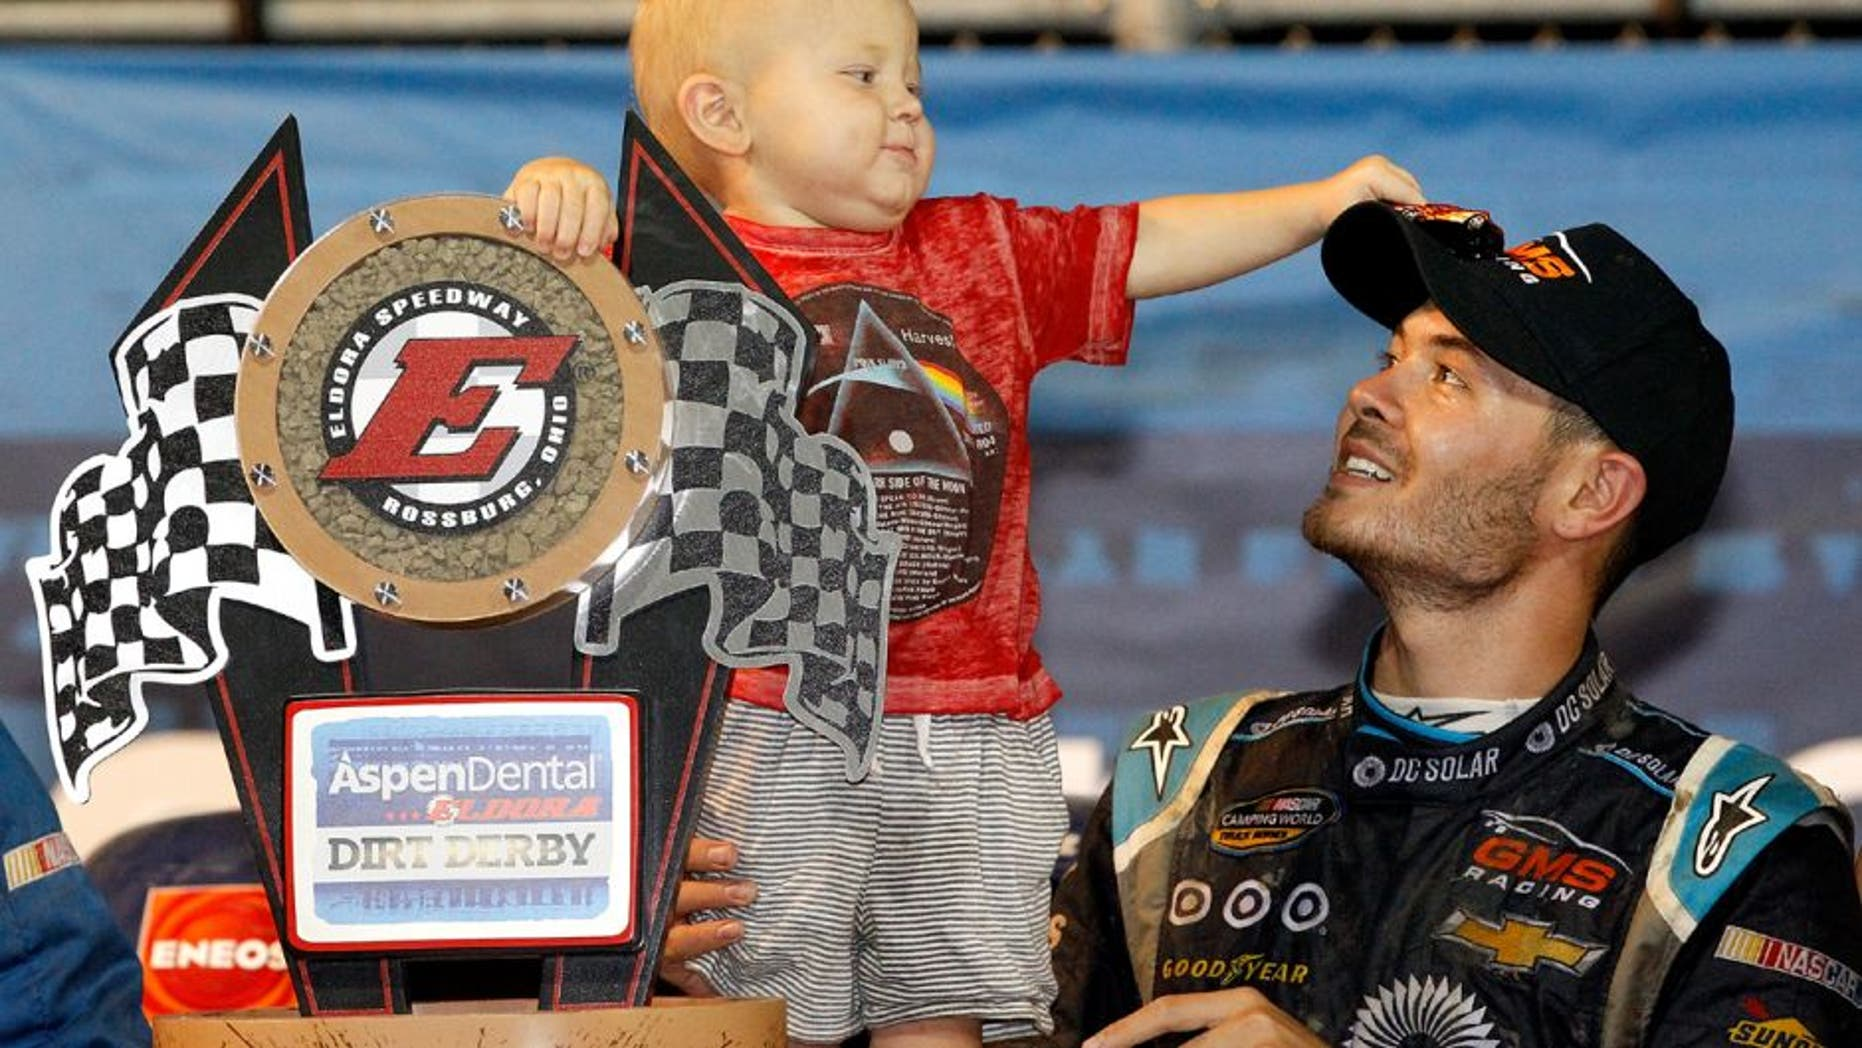 ROSSBURG, OH - JULY 20: Kyle Larson, driver of the #24 DC Solar Chevrolet, and his son Owen Larson hold the NASCAR Camping World Series 4th Annual Aspen Dental Eldora Dirt Derby 150 trophy after winning at Eldora Speedway on July 20, 2016 in Rossburg, Ohio. (Photo by Brian Lawdermilk/Getty Images)